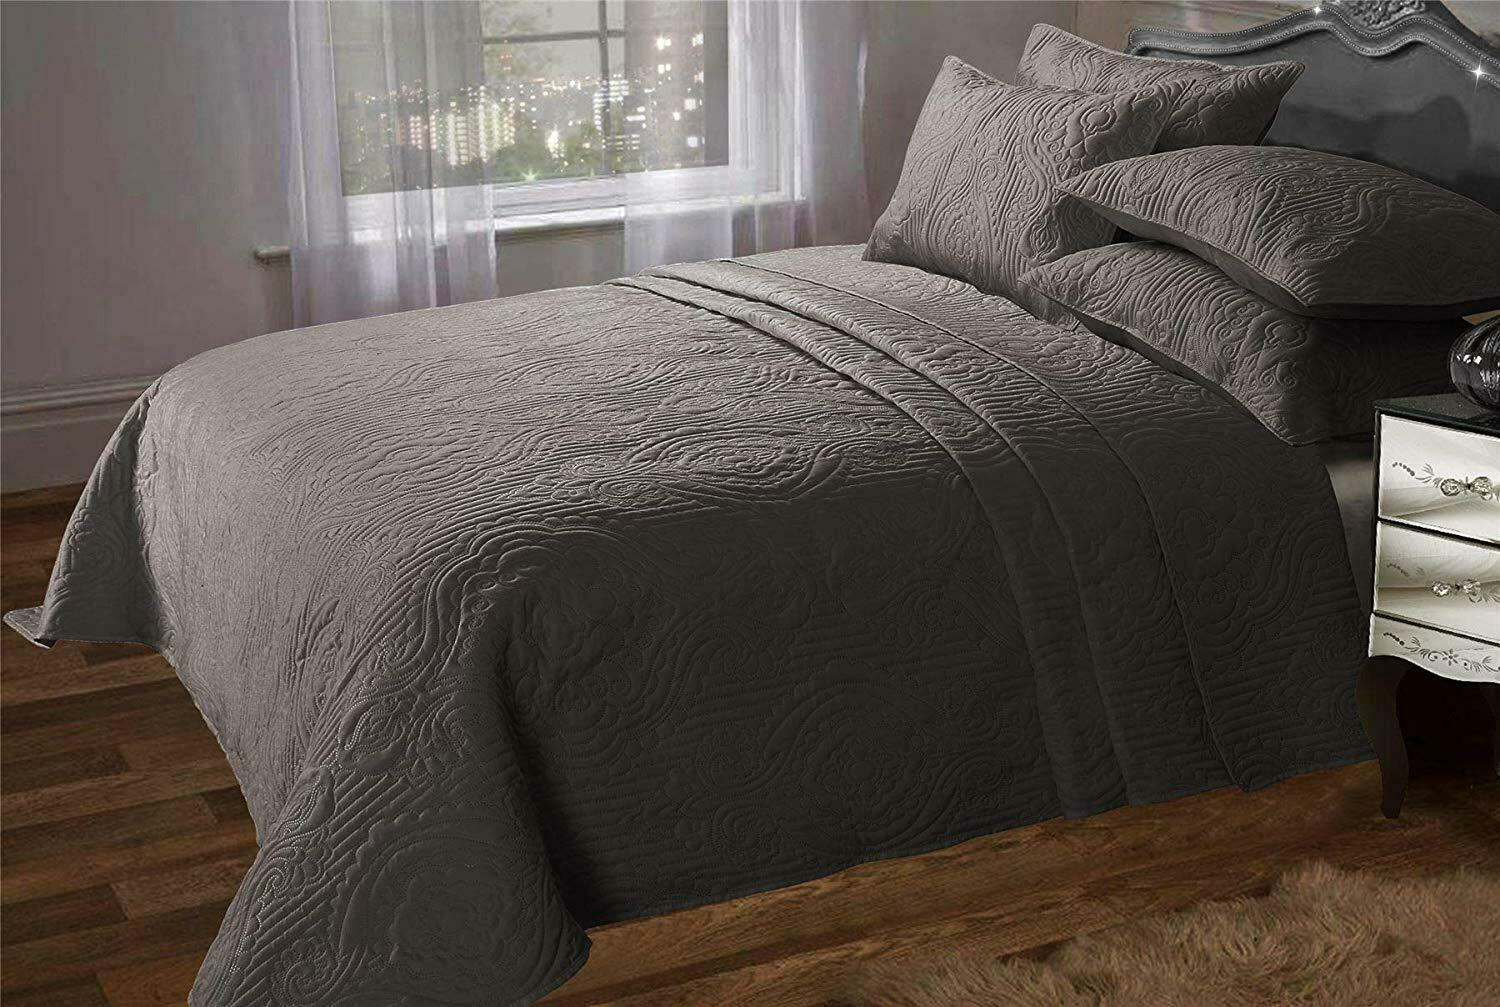 Luxury Taupe King Size Bedspread Set Comforter With Two Pillow Shams 240x260cm